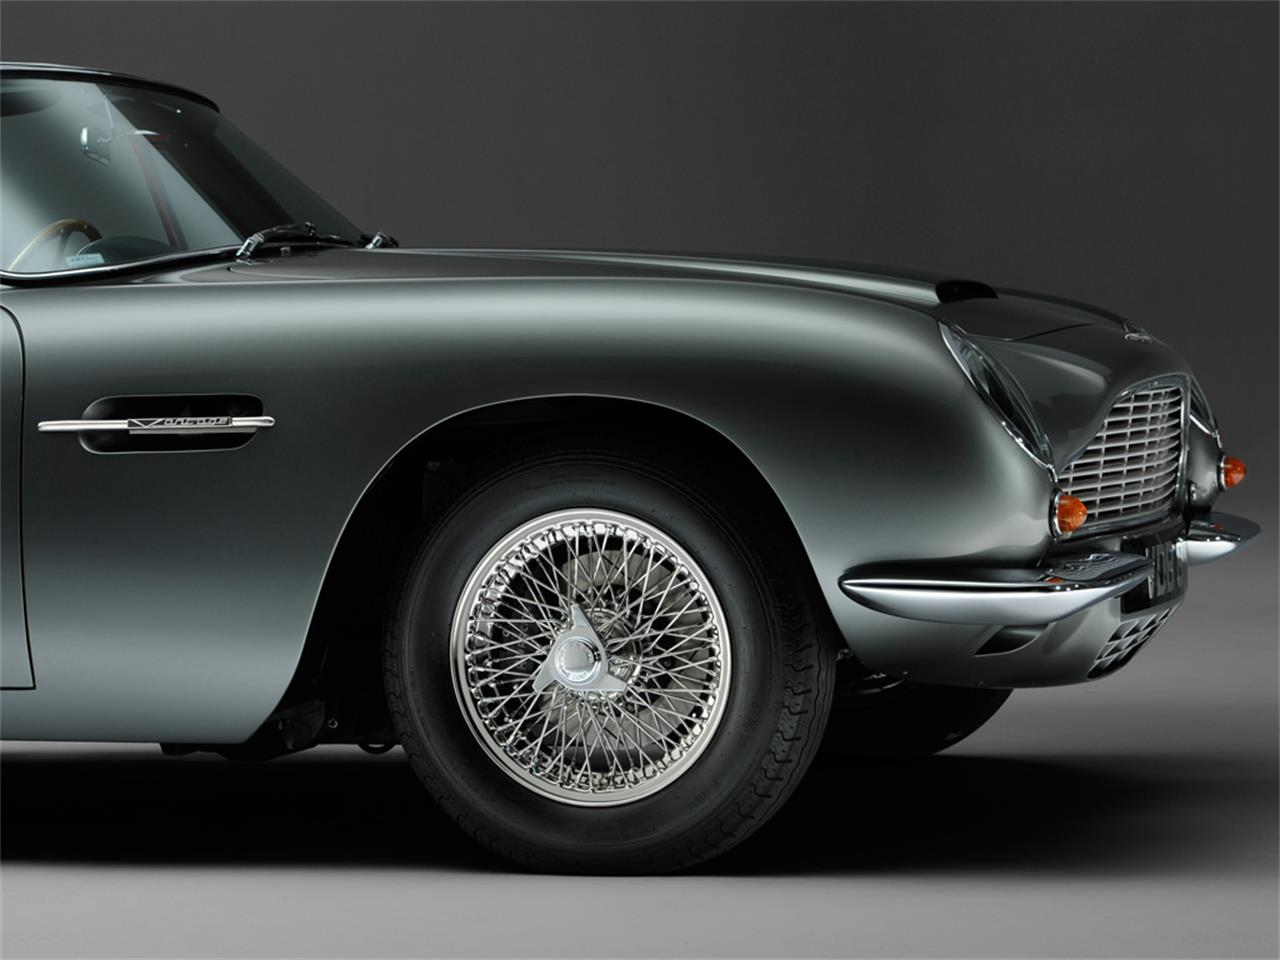 Large Picture of '67 Aston Martin DB6 MKI Vantage Volante Auction Vehicle Offered by JD Classics LTD - IVCB